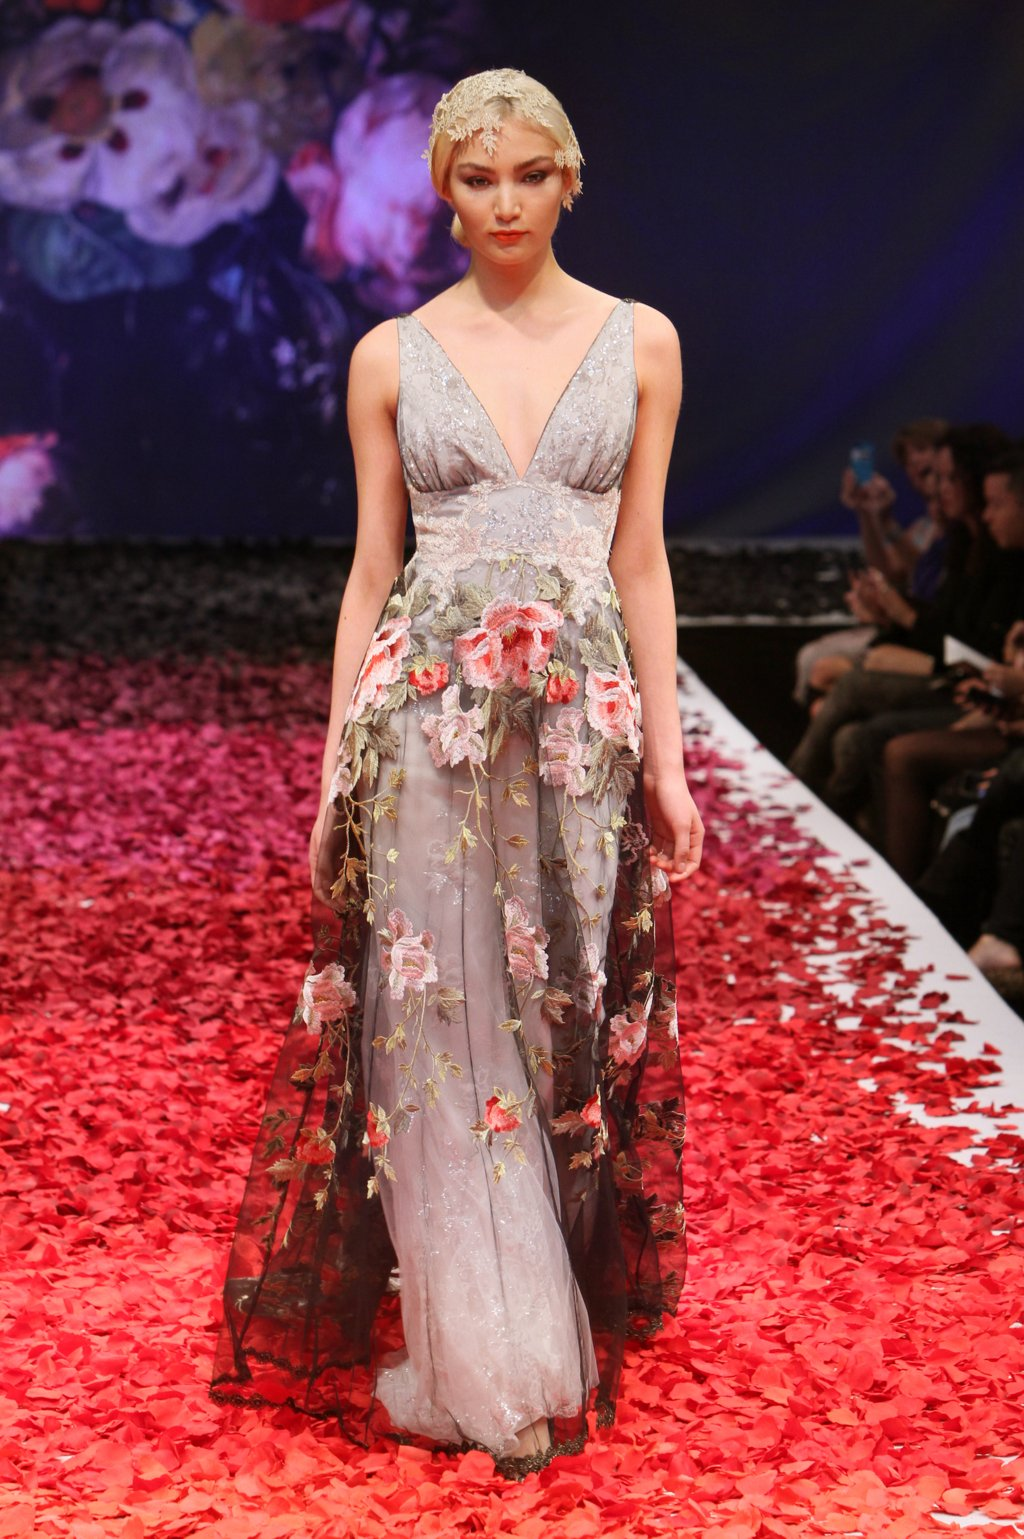 Raven wedding dress by claire pettibone 2014 still life for Wedding dress claire pettibone